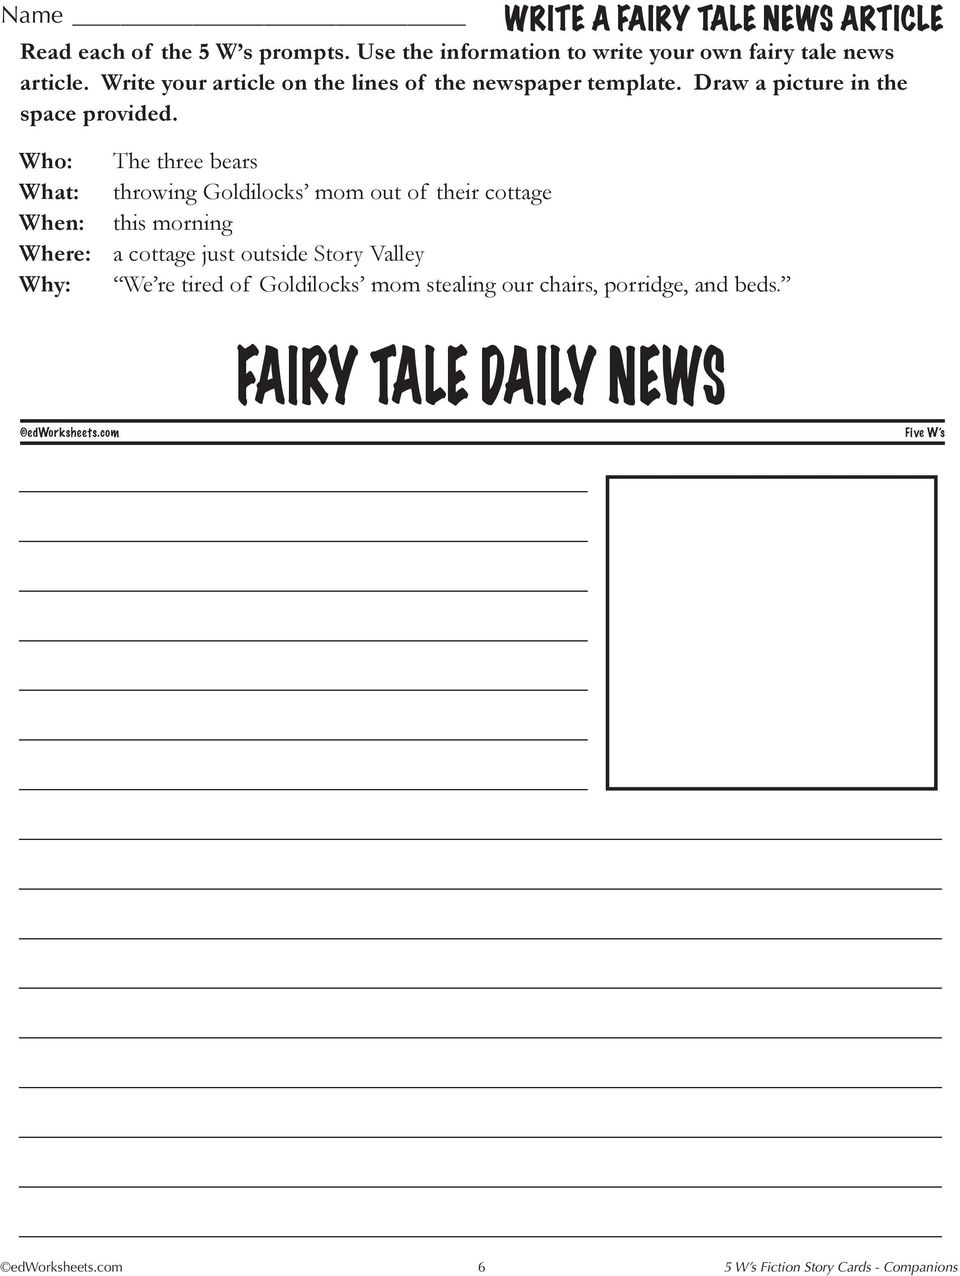 5 W S Daily News Story Title Reading Level Word Count Pdf